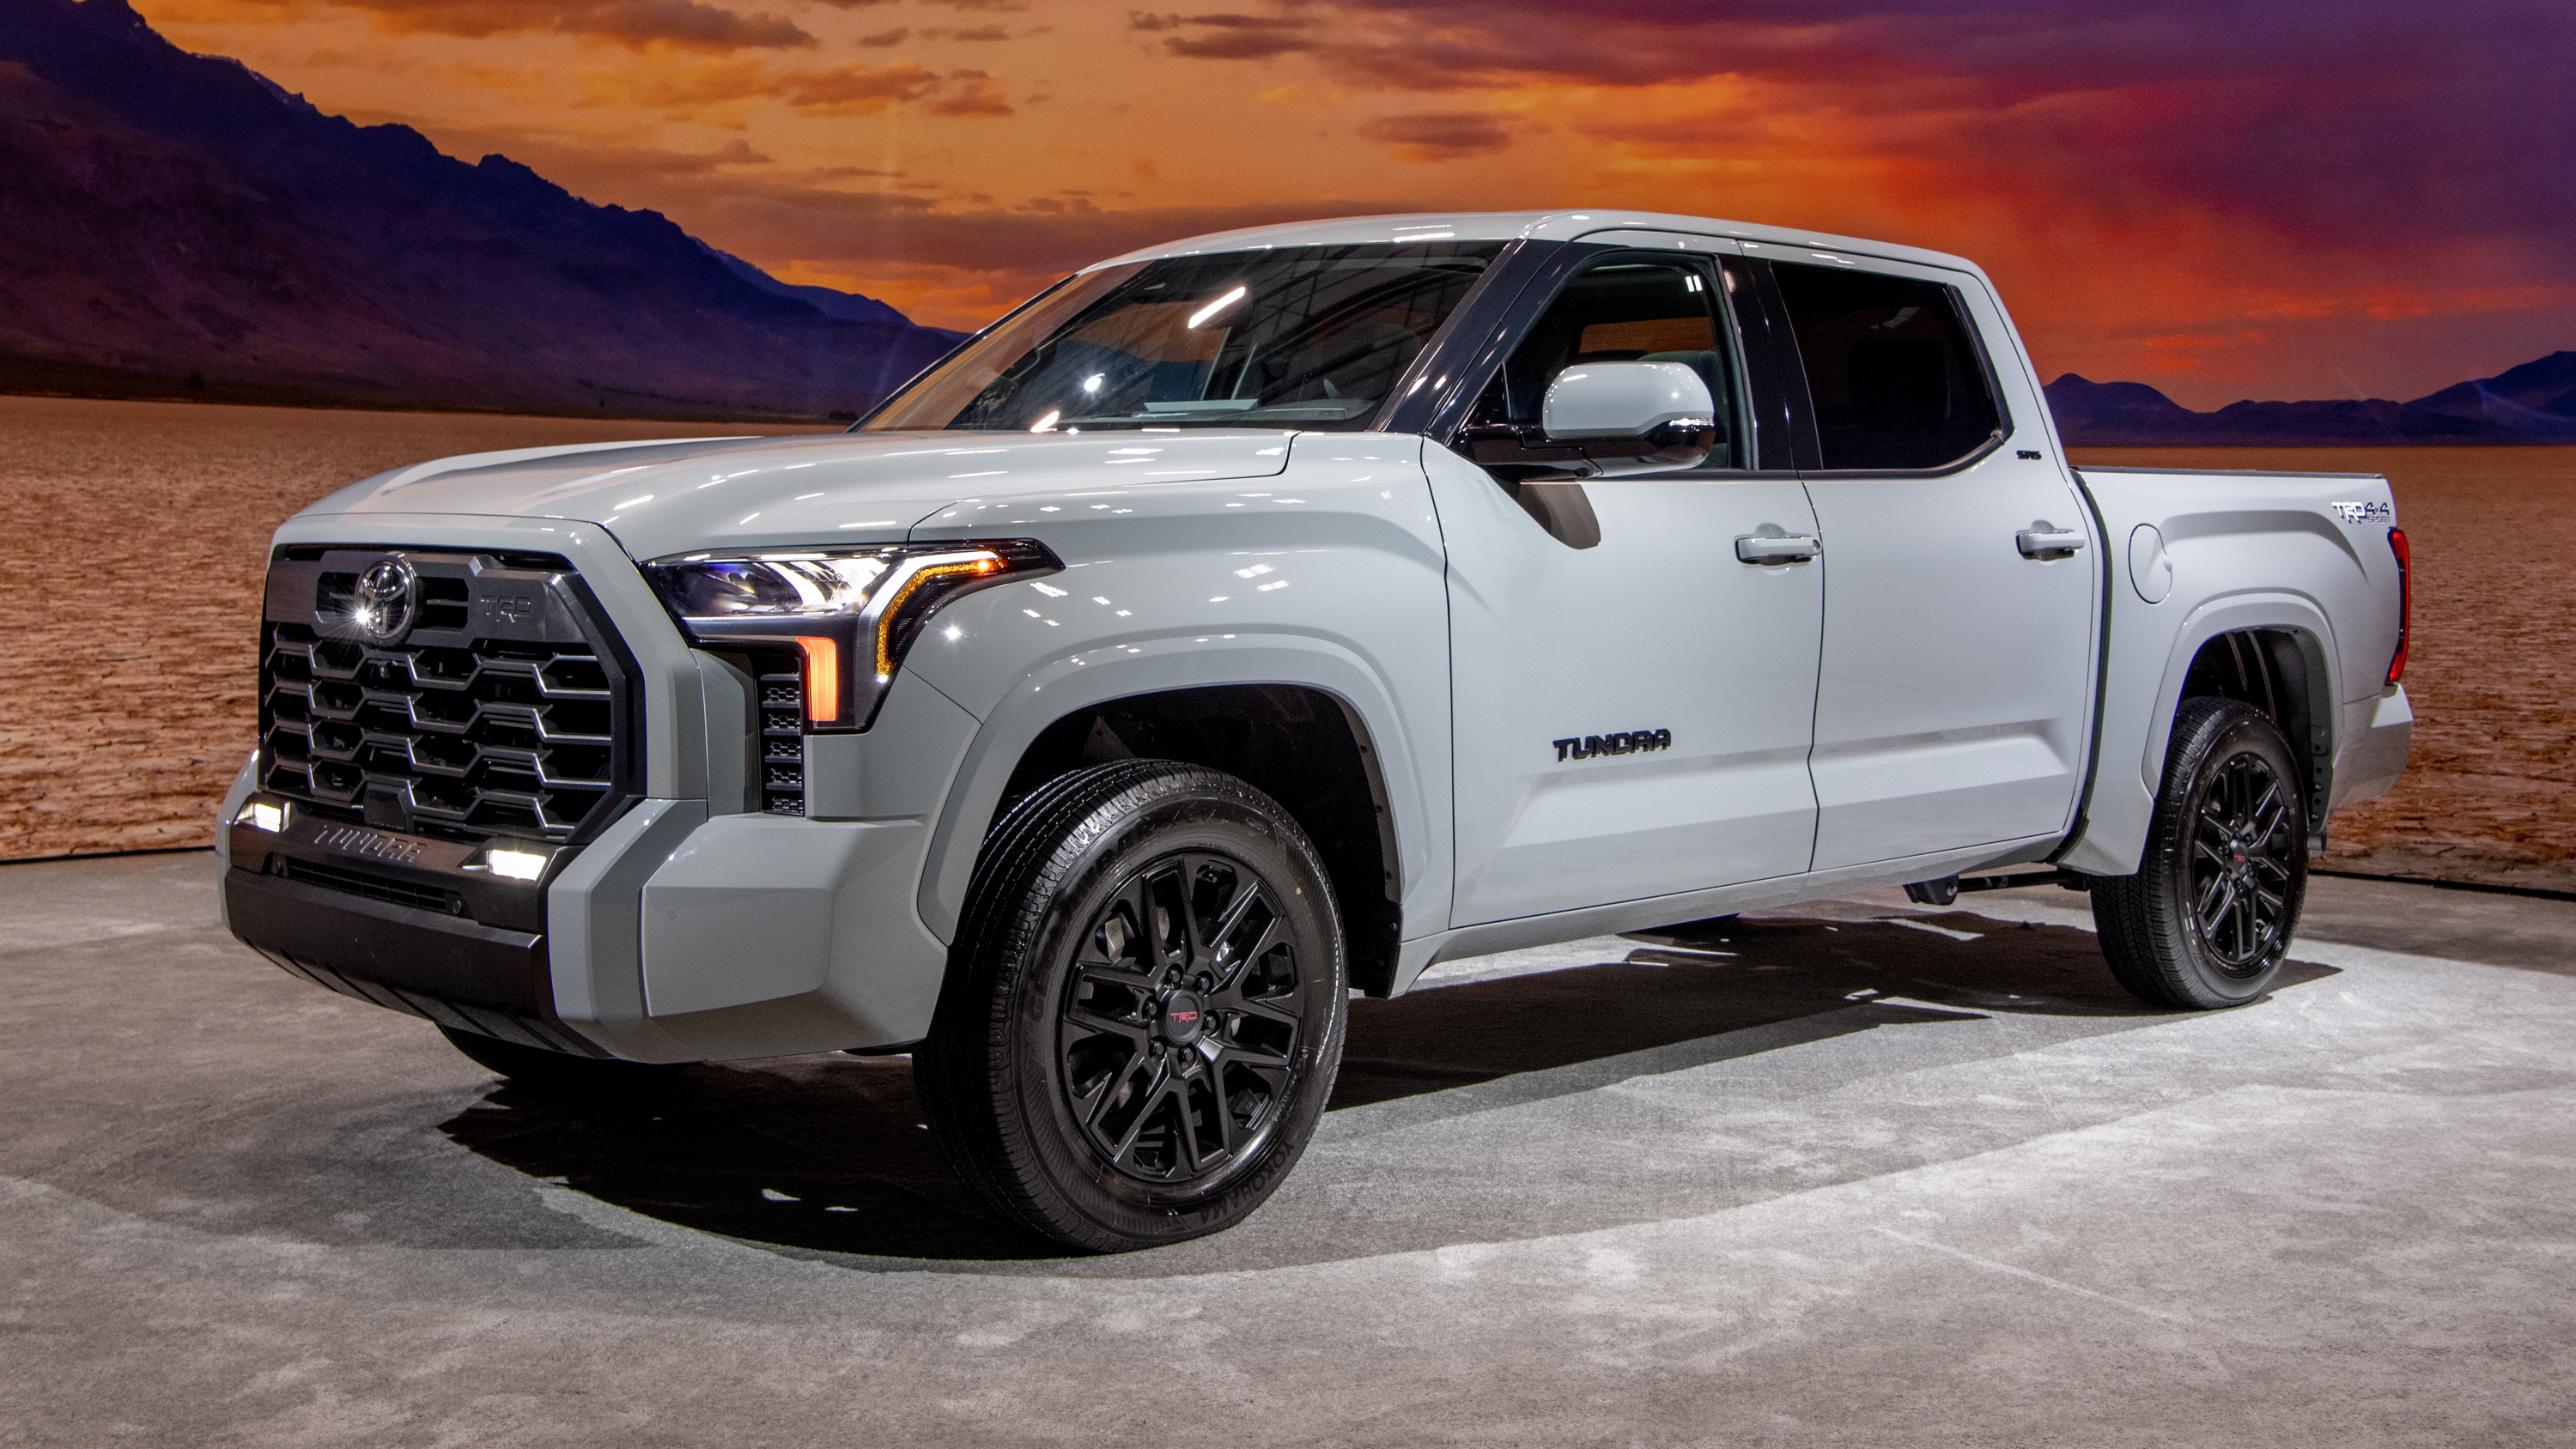 Video: 2022 Toyota Tundra first look: The next-gen full-size truck is here